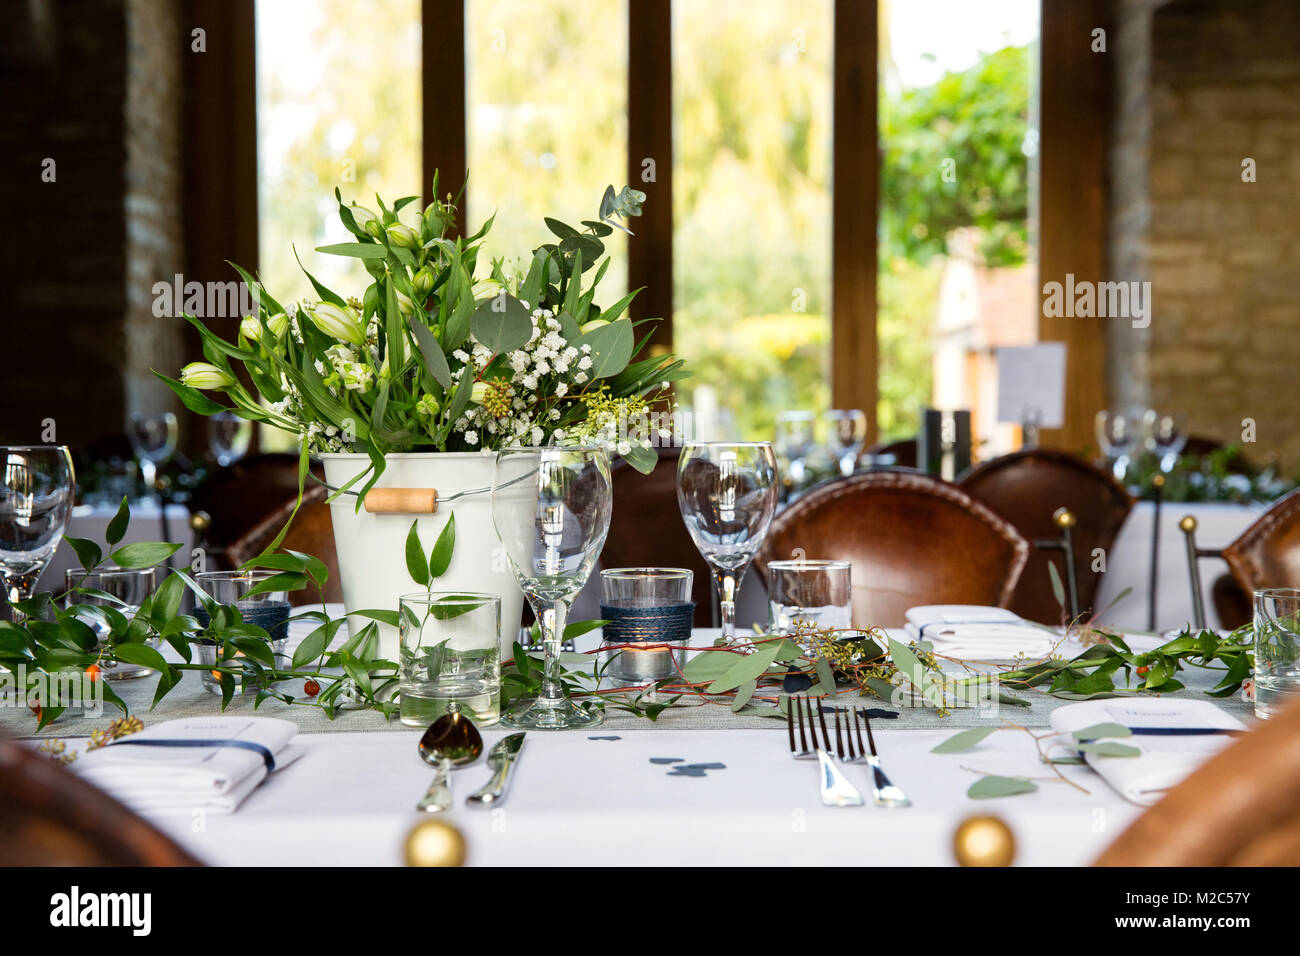 Table laid with place settings, floral arrangement and glassware - Stock Image